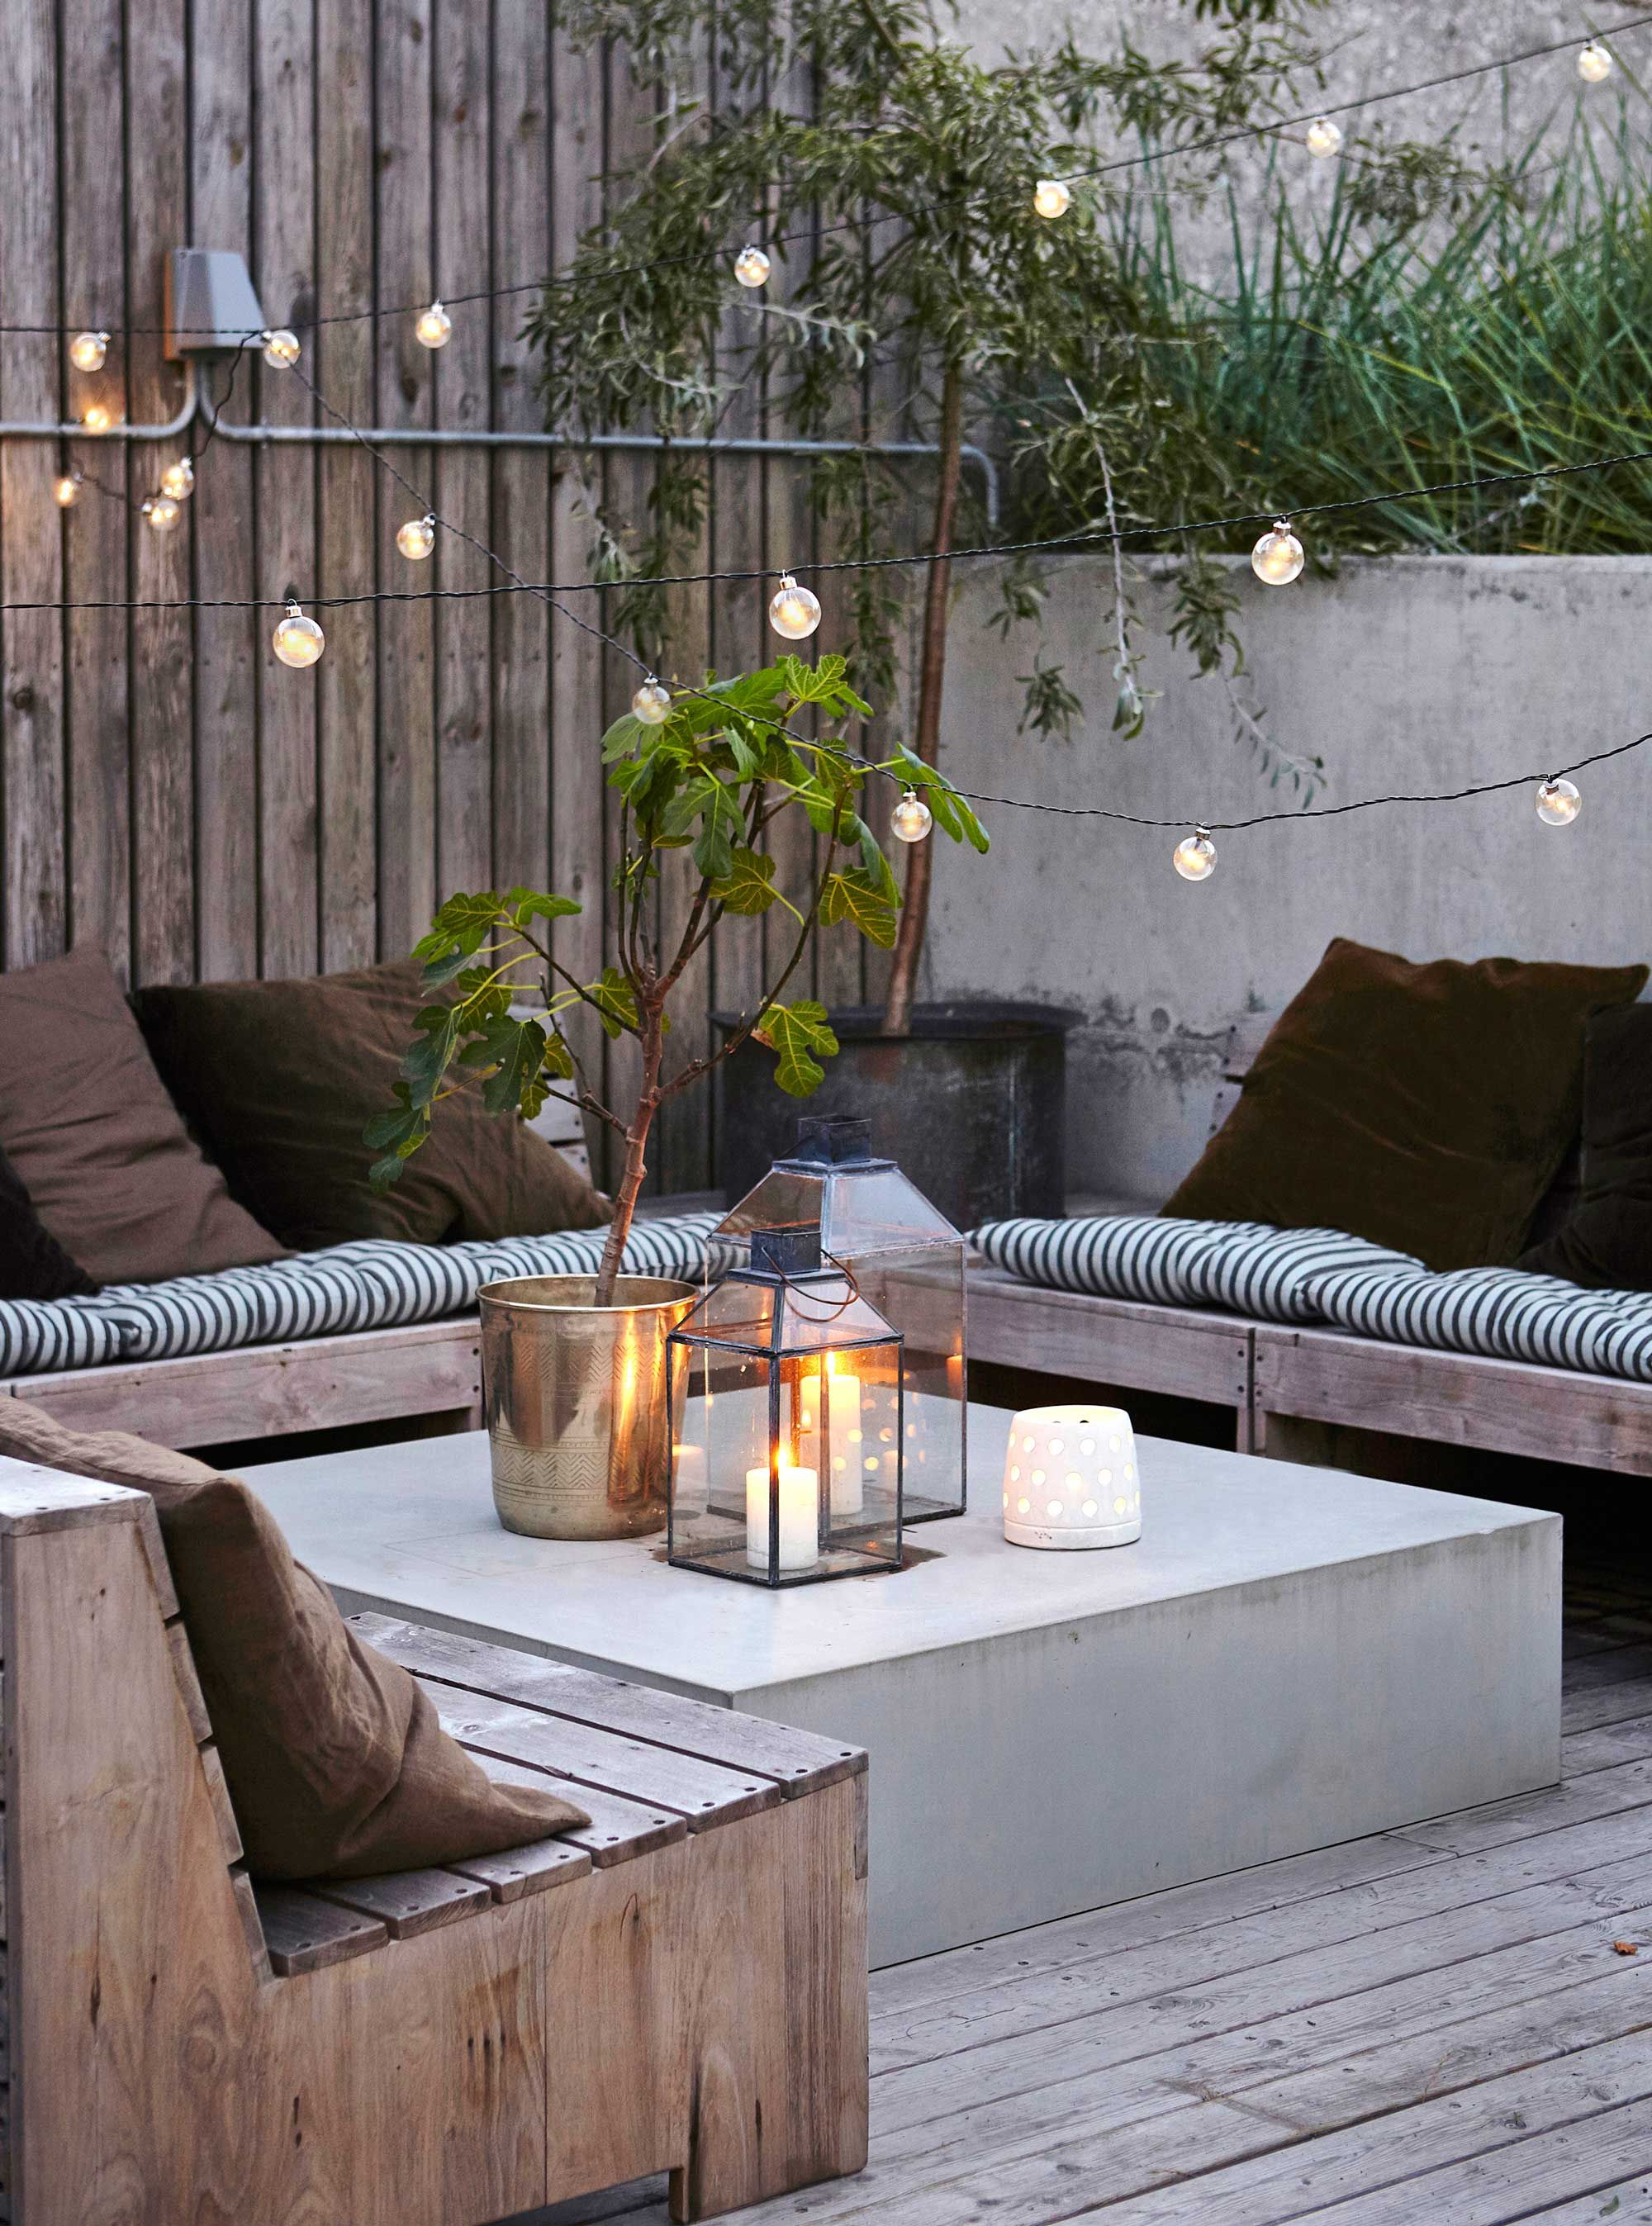 garten lounge ecke stimmung lichter garden design pinterest garten terrasse und balkon. Black Bedroom Furniture Sets. Home Design Ideas